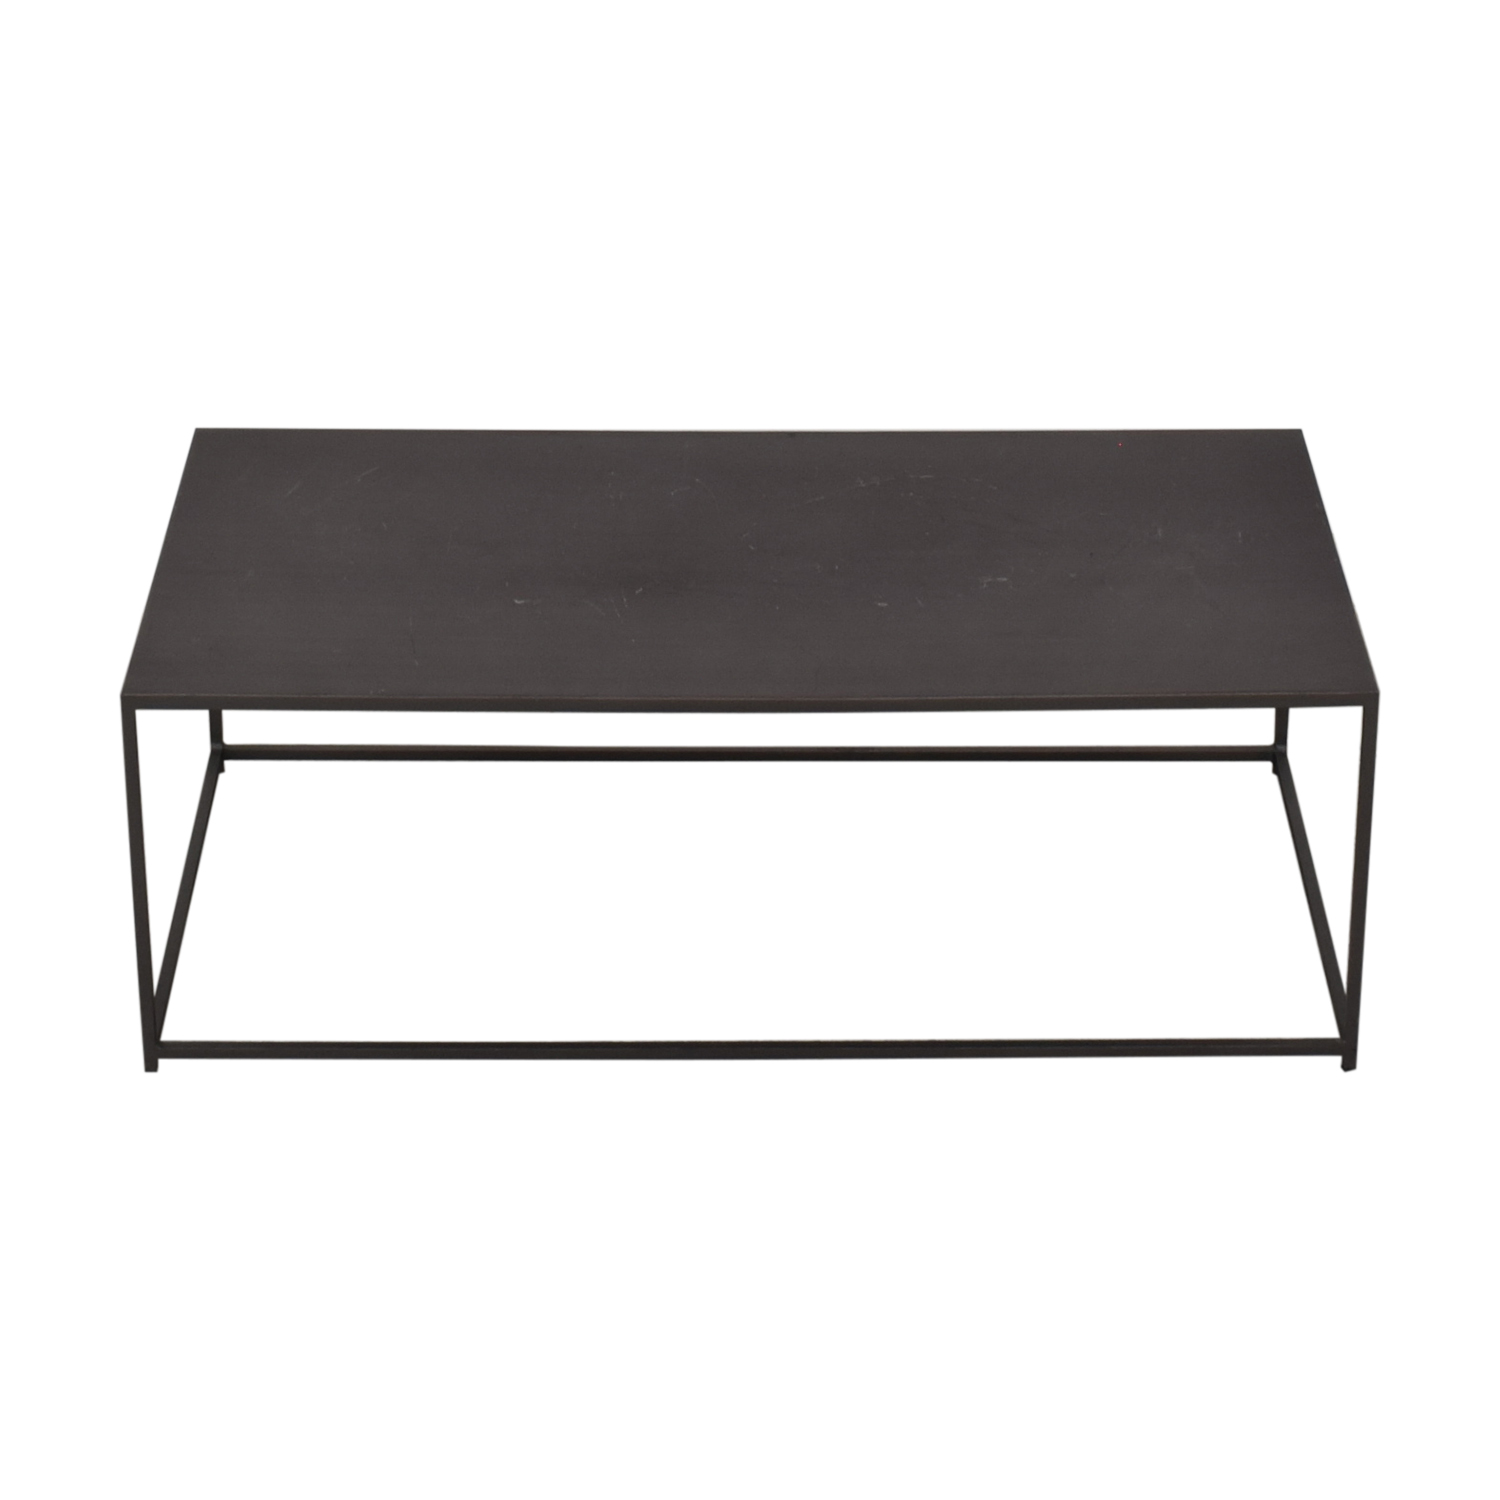 CB2 CB2 Mill Coffee Table Tables